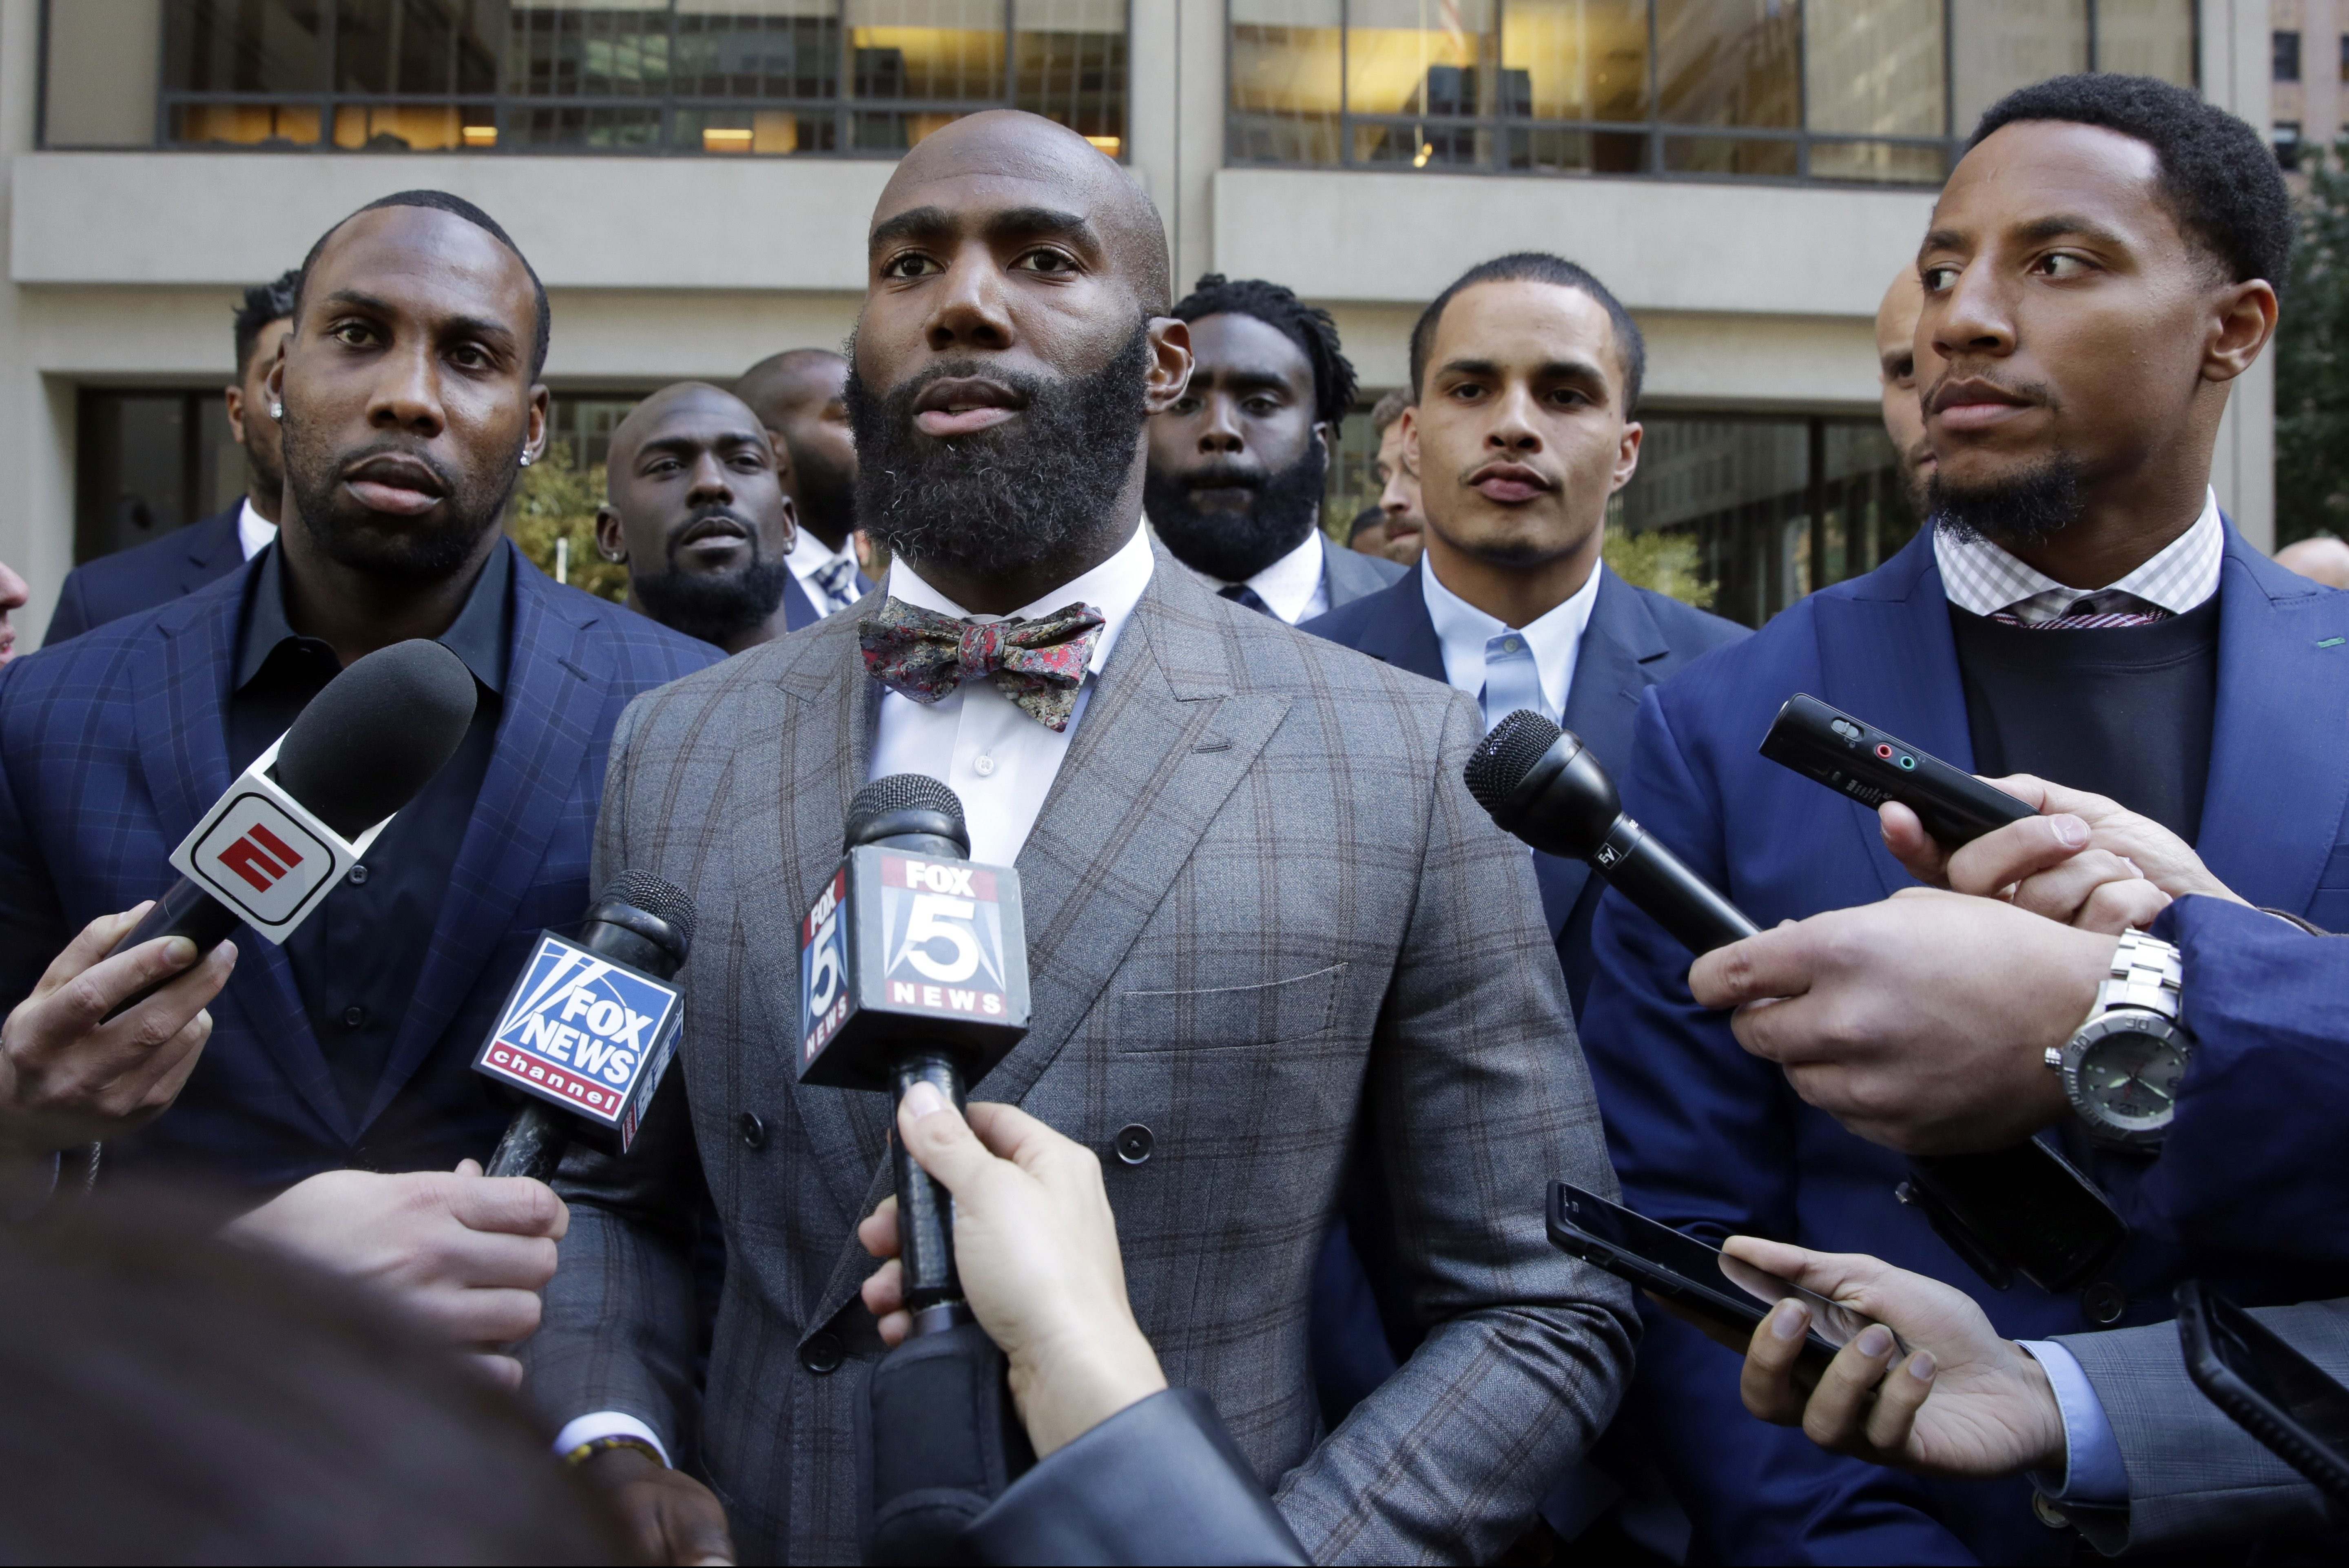 Anquan Boldin, left, Malcolm Jenkins, center, and Eric Reid, right, speak to the media outside NFL headquarters in New York as part of the Players Coalition back in October.